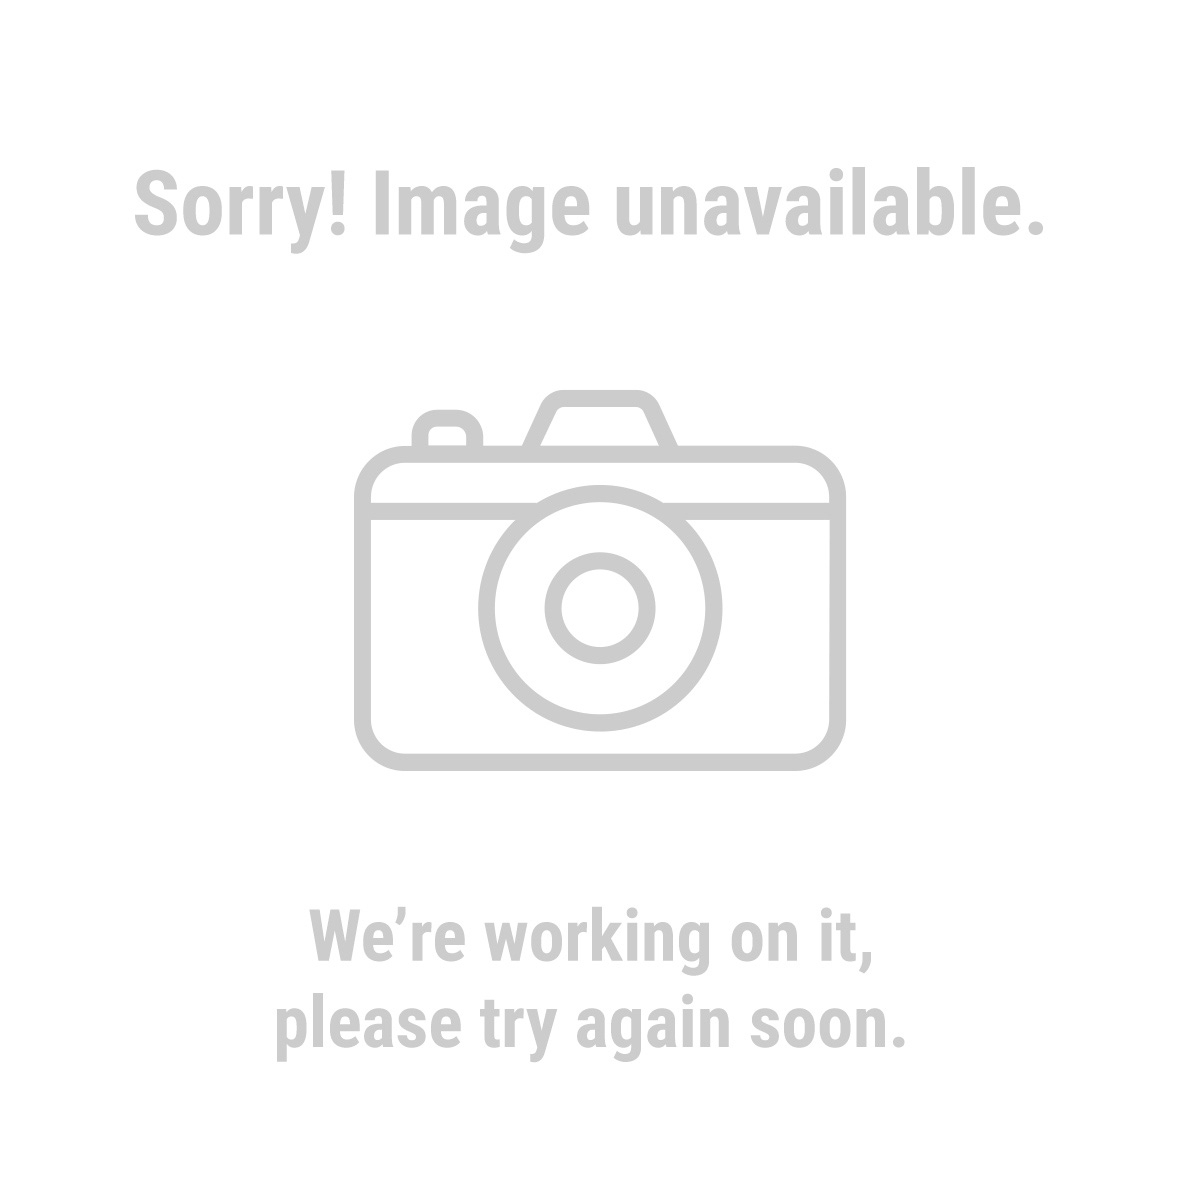 Central-Machinery 41513 2'' x 7/8''  Light Duty Rigid Caster